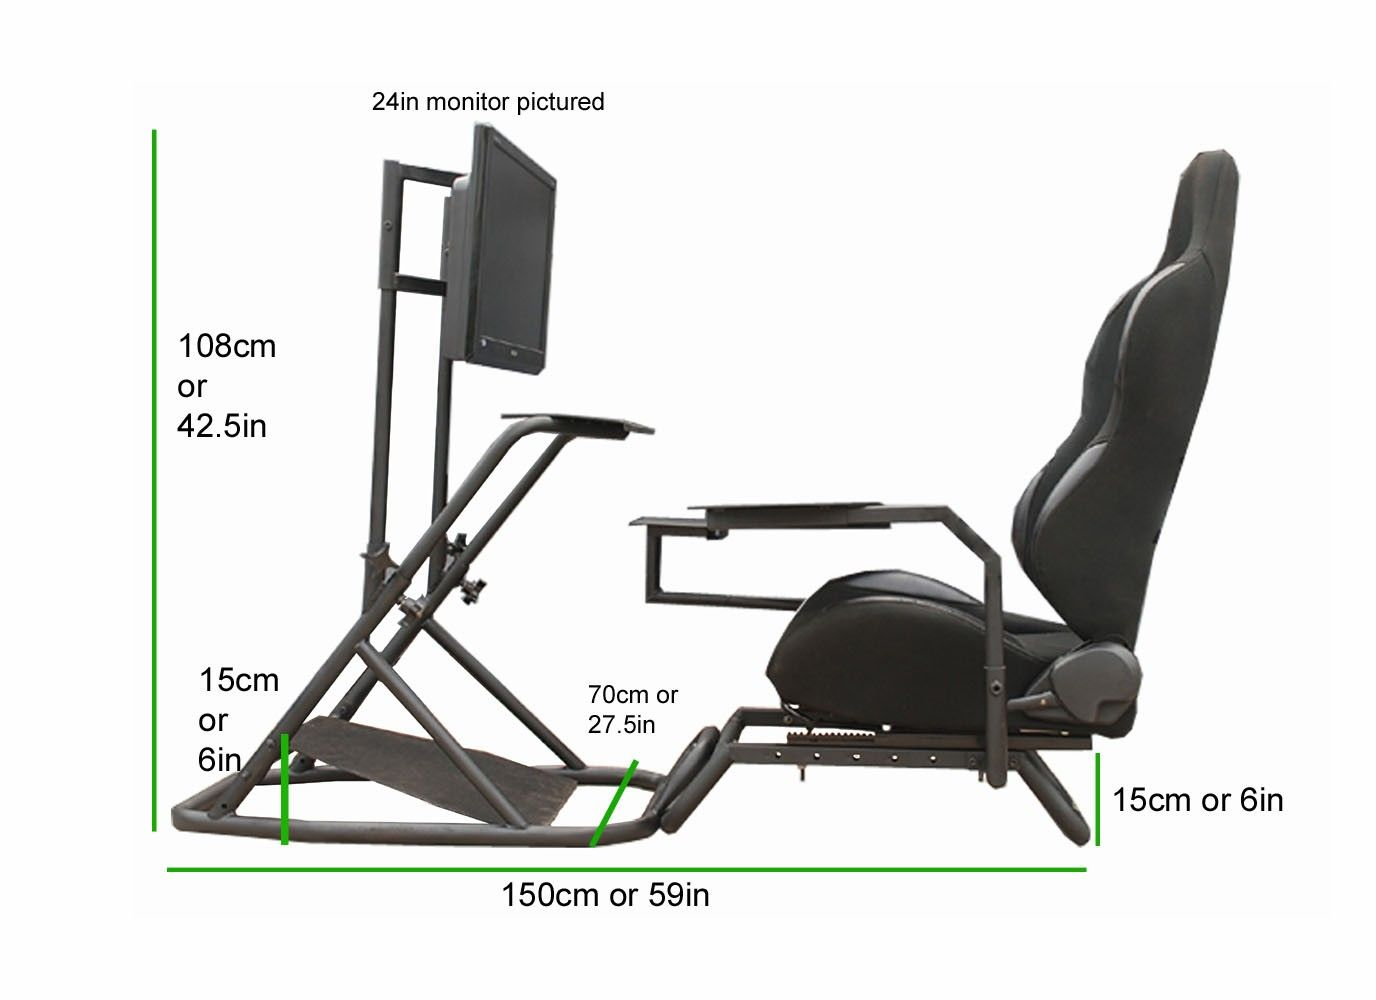 Racing Seat Office Chair Diy Hanging Ceiling Cockpits Bookmark Worthy Pinterest Sims